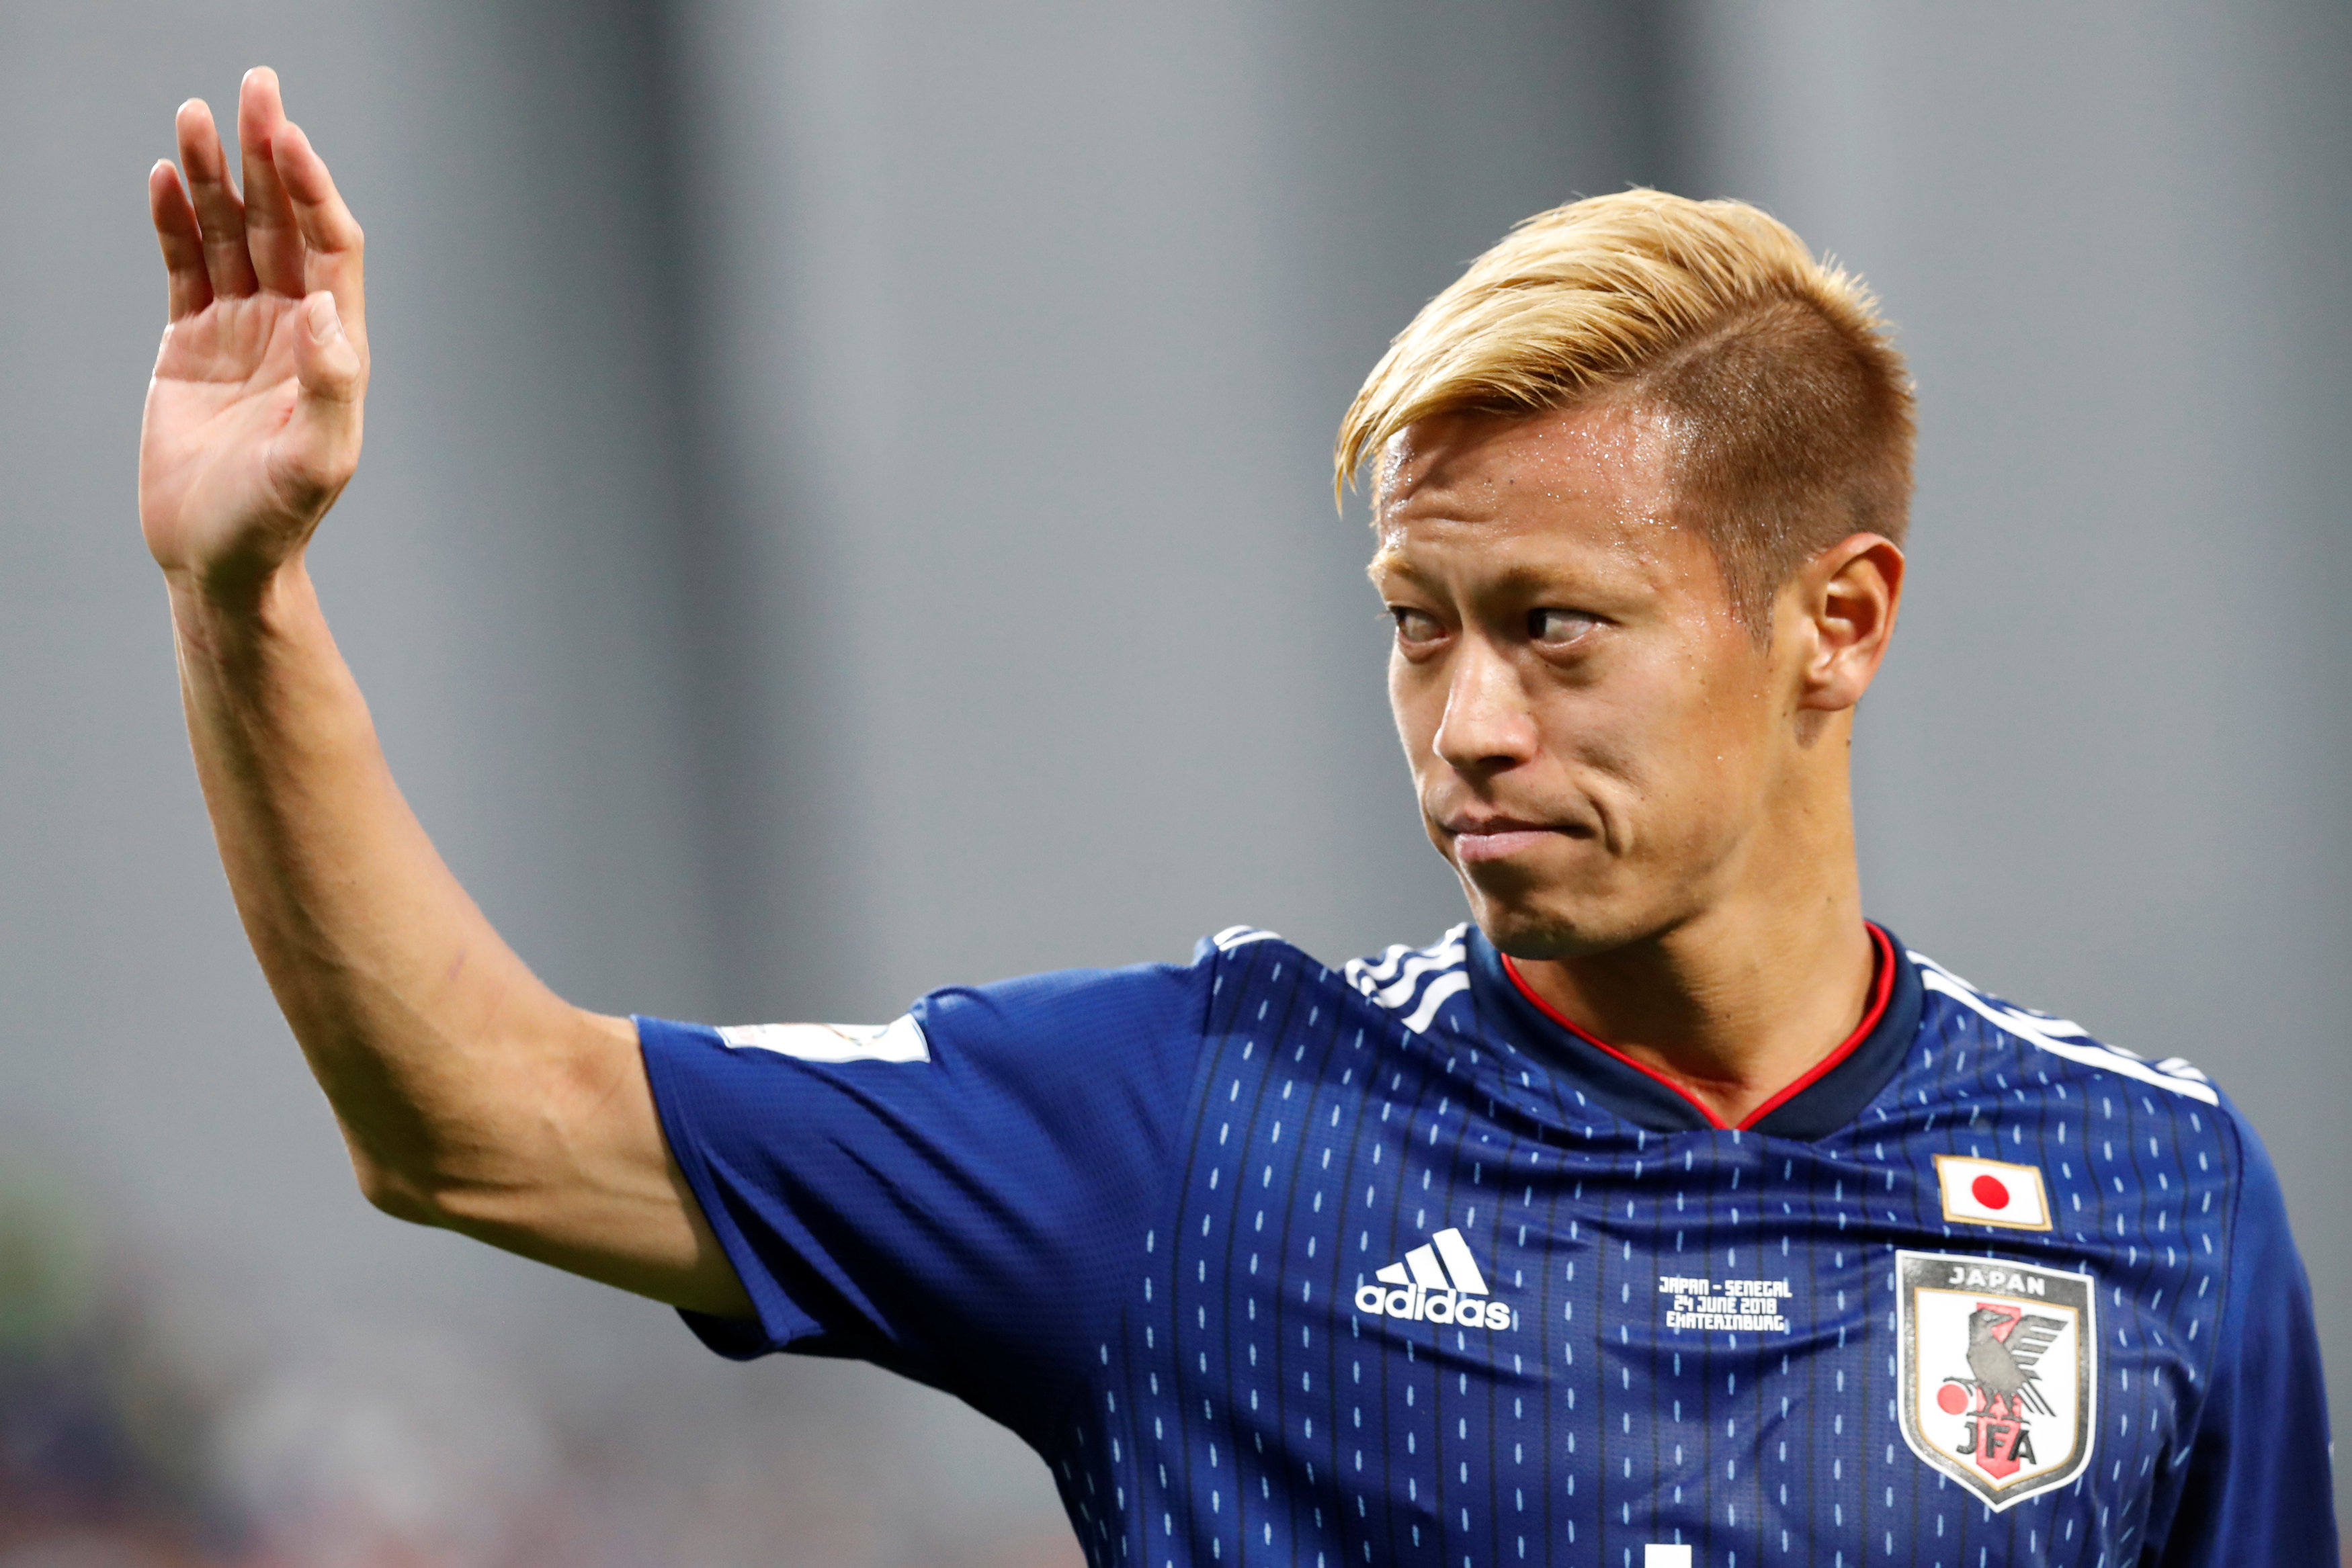 After Manchester United & AC Milan pledges, Keisuke Honda joins Dutch club Vitesse